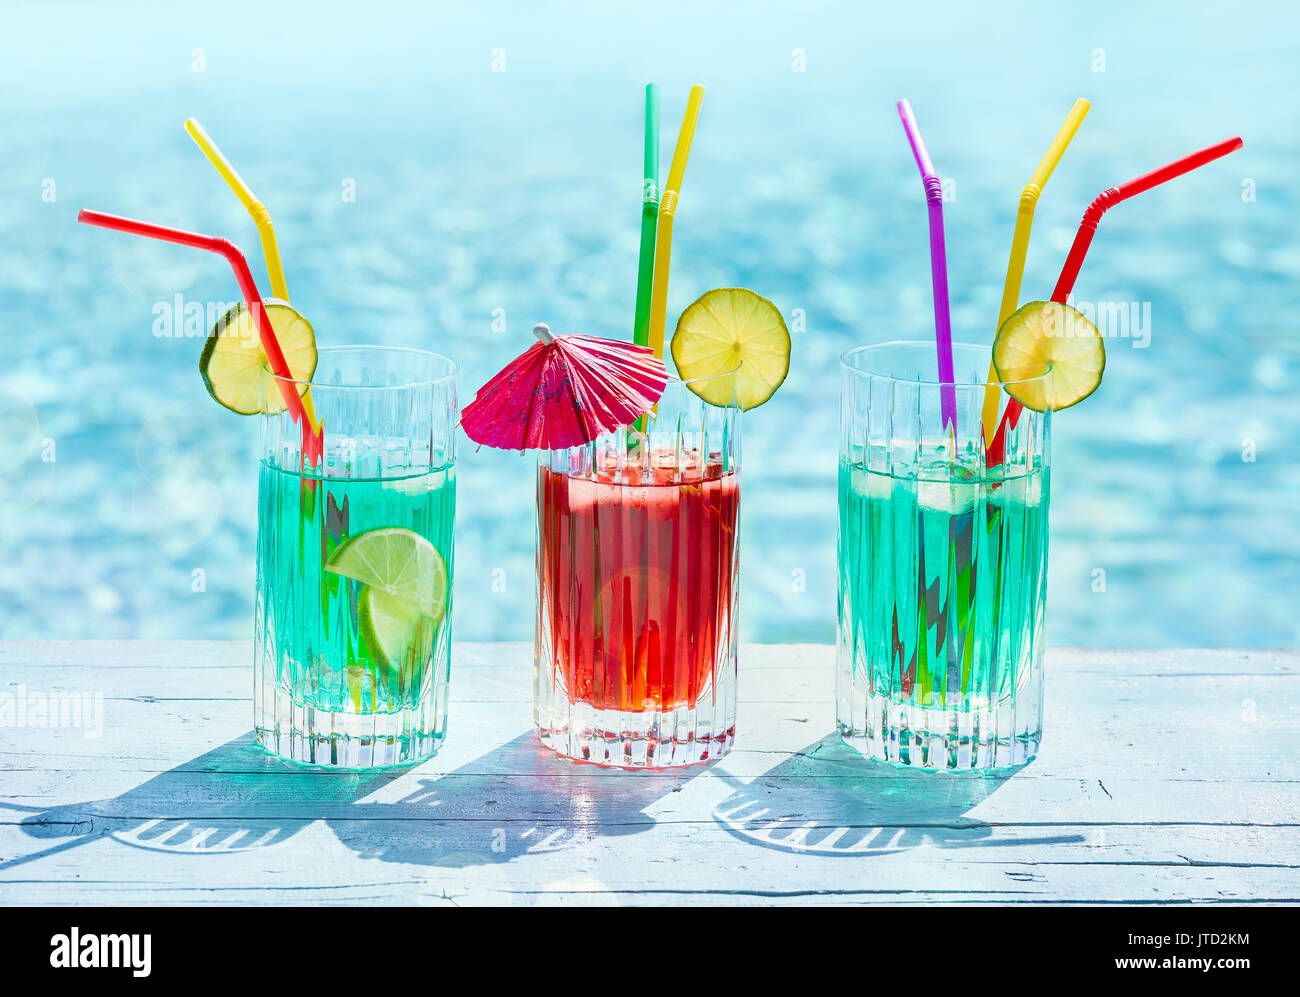 Drinking Straw Glass Side On Stock Photos Drinking Straw Glass Side On Stock Images Alamy